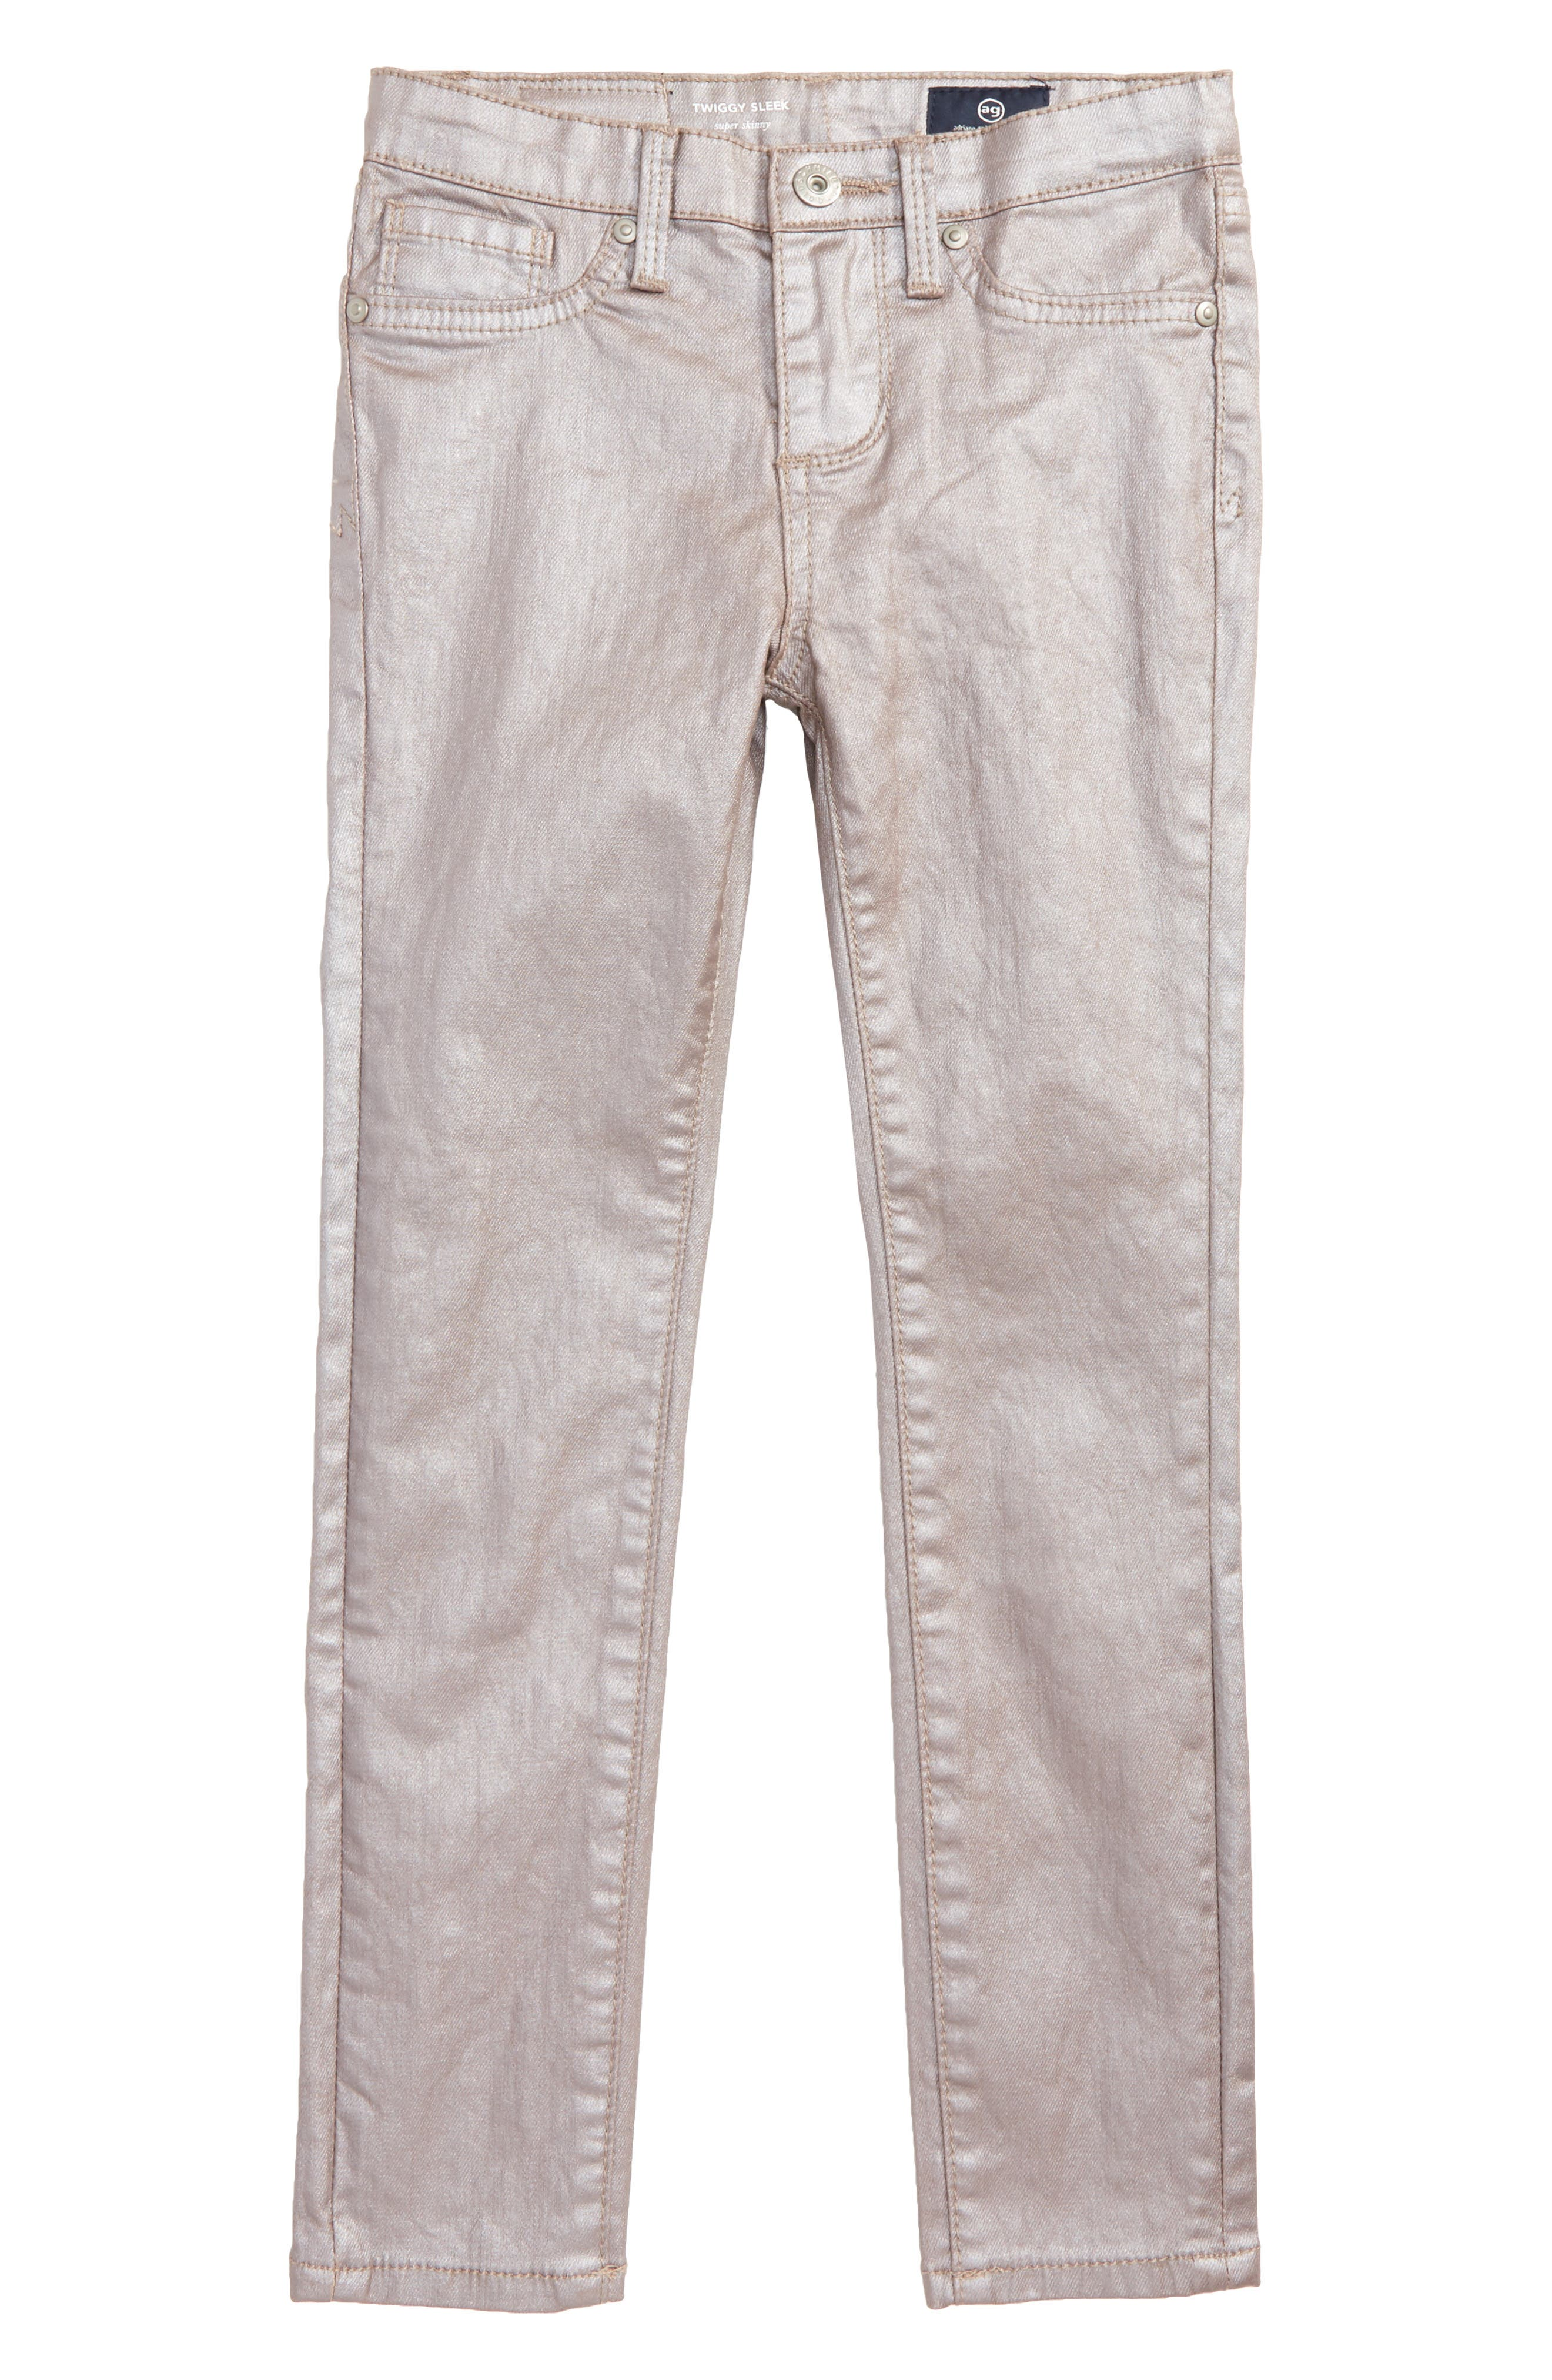 Main Image - ag adriano goldschmied kids The Sleek Twiggy Skinny Ankle Jeans (Toddler Girls & Little Girls)